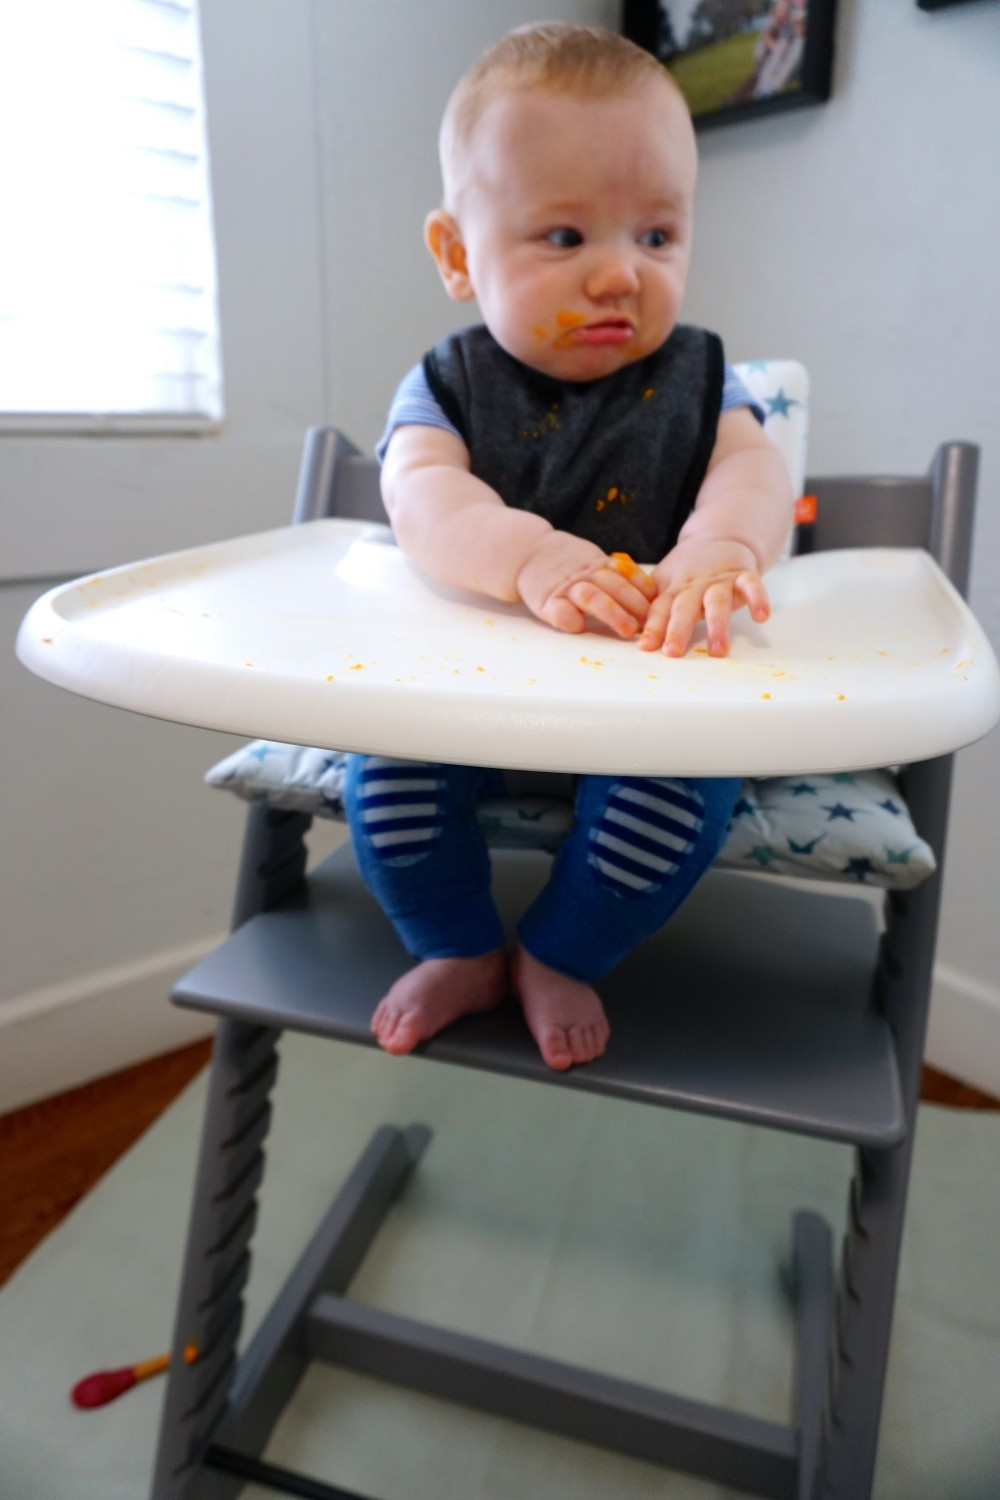 Mason's First Food Made Easier with Gathre Floor Mat-Avanchy Bamboo Spoon-Stokke High Chair-Gathre Mat-Have Need Want 2